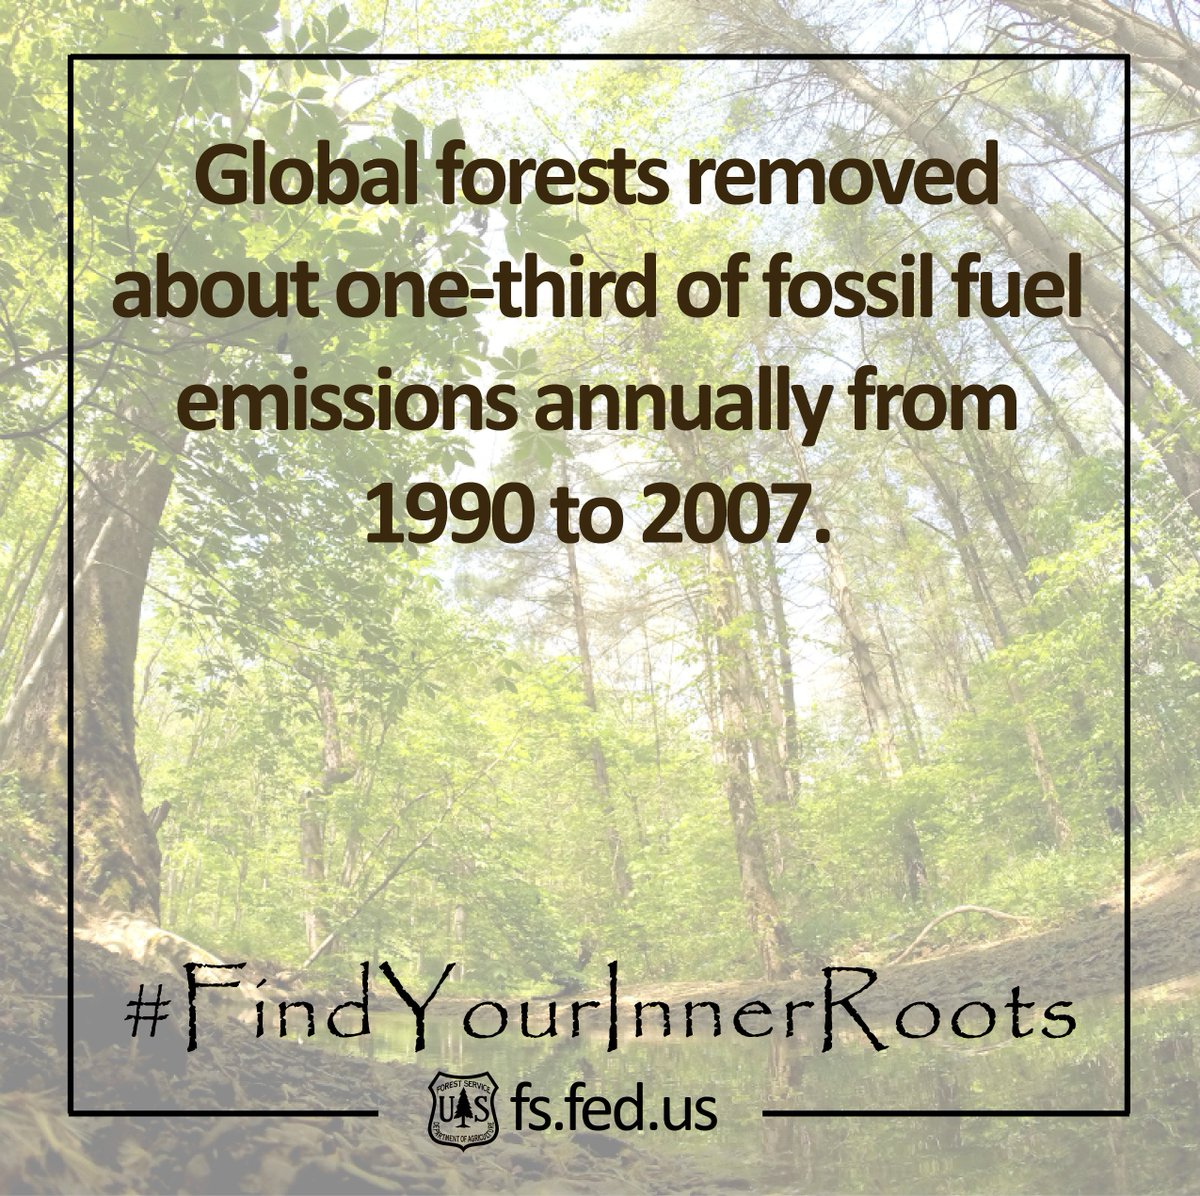 Another #TreeFact for you. Did you know how important trees are to fighting emissions? #FindYourInnerRoots https://t.co/8HwvNfQxlF